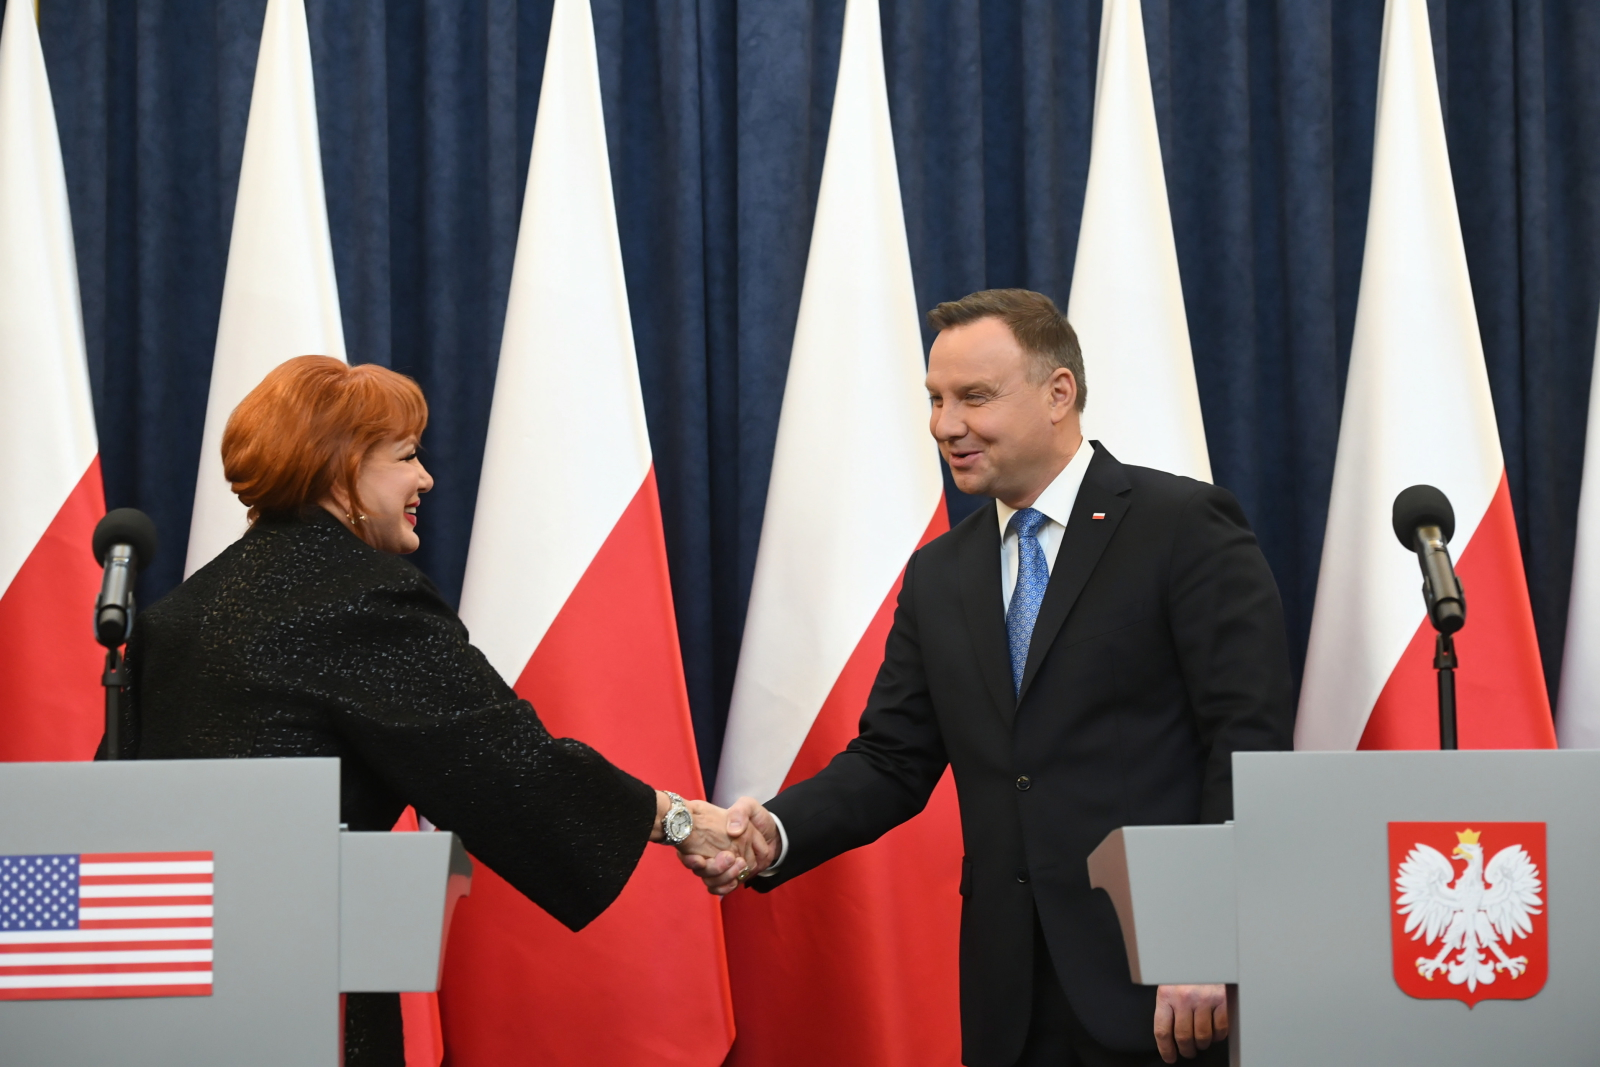 The US ambassador to Poland, Georgette Mosbacher, at a joint press conference with Polish President Andrzej Duda in Warsaw on Wednesday